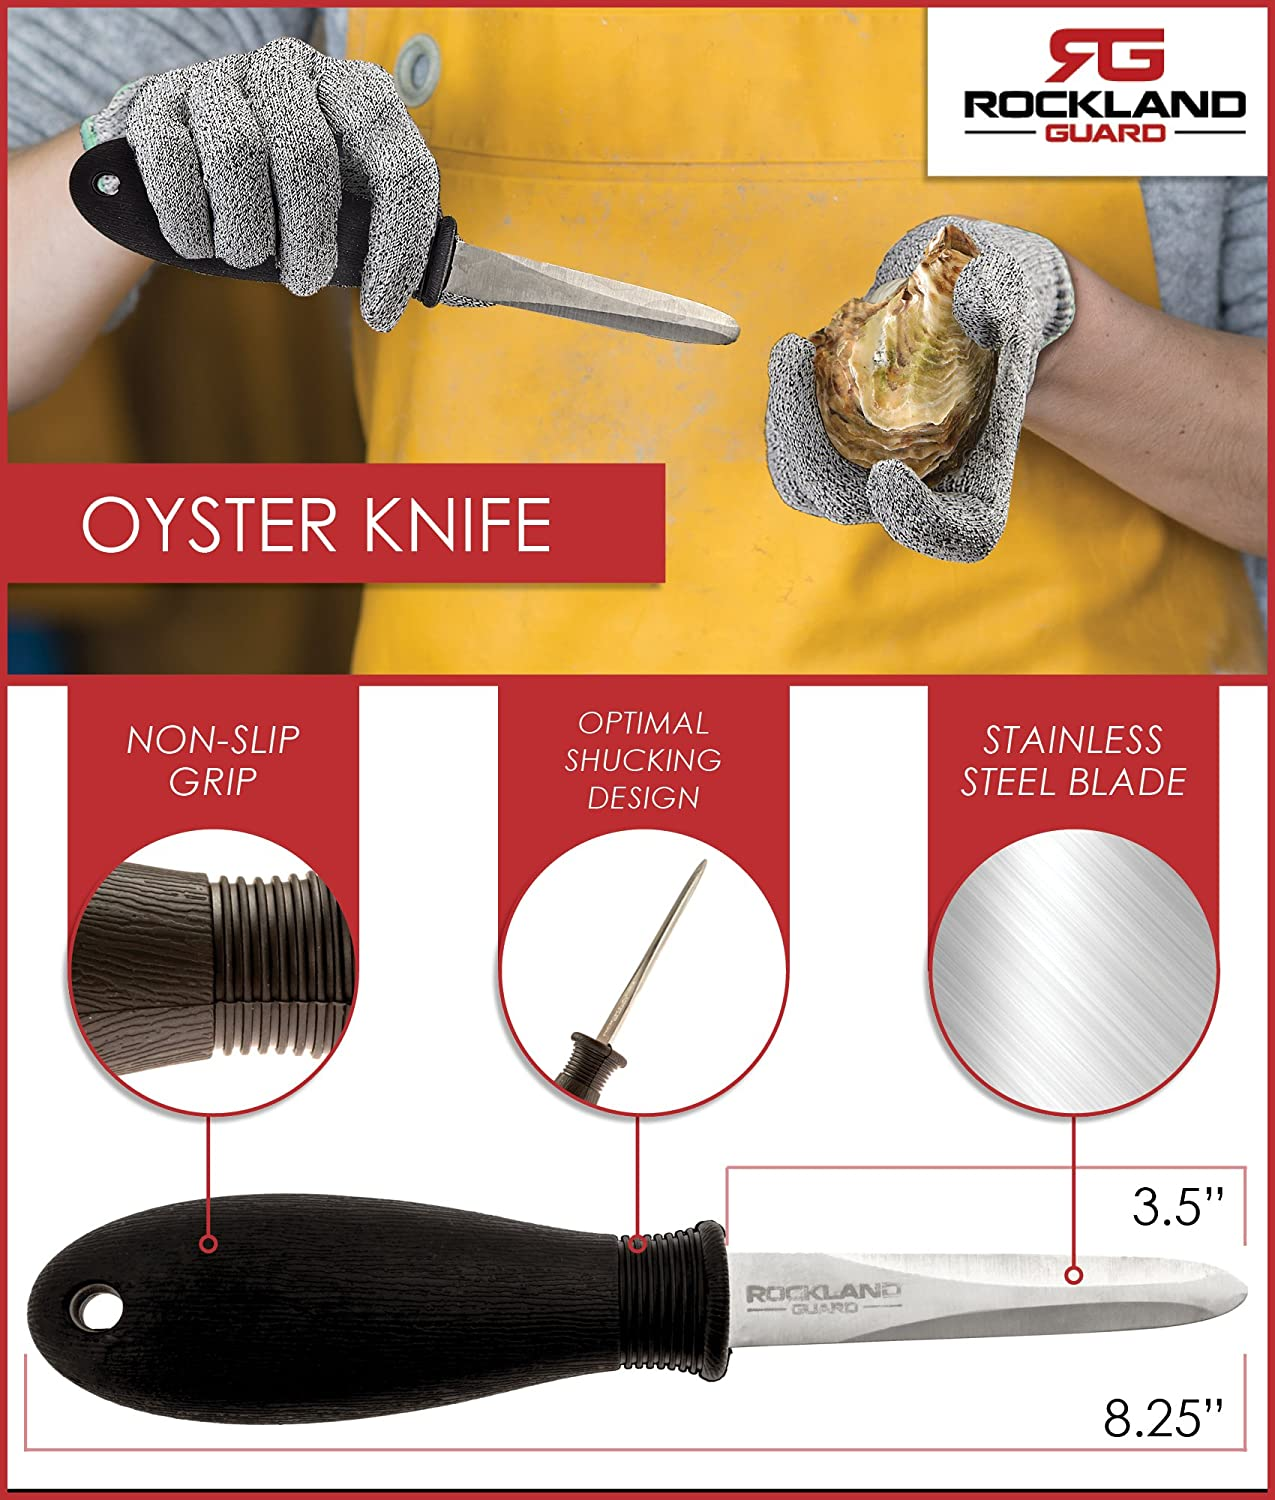 Rockland Guard Oyster Shucking Set including 3.5'' Stainless steel Oyster Knife